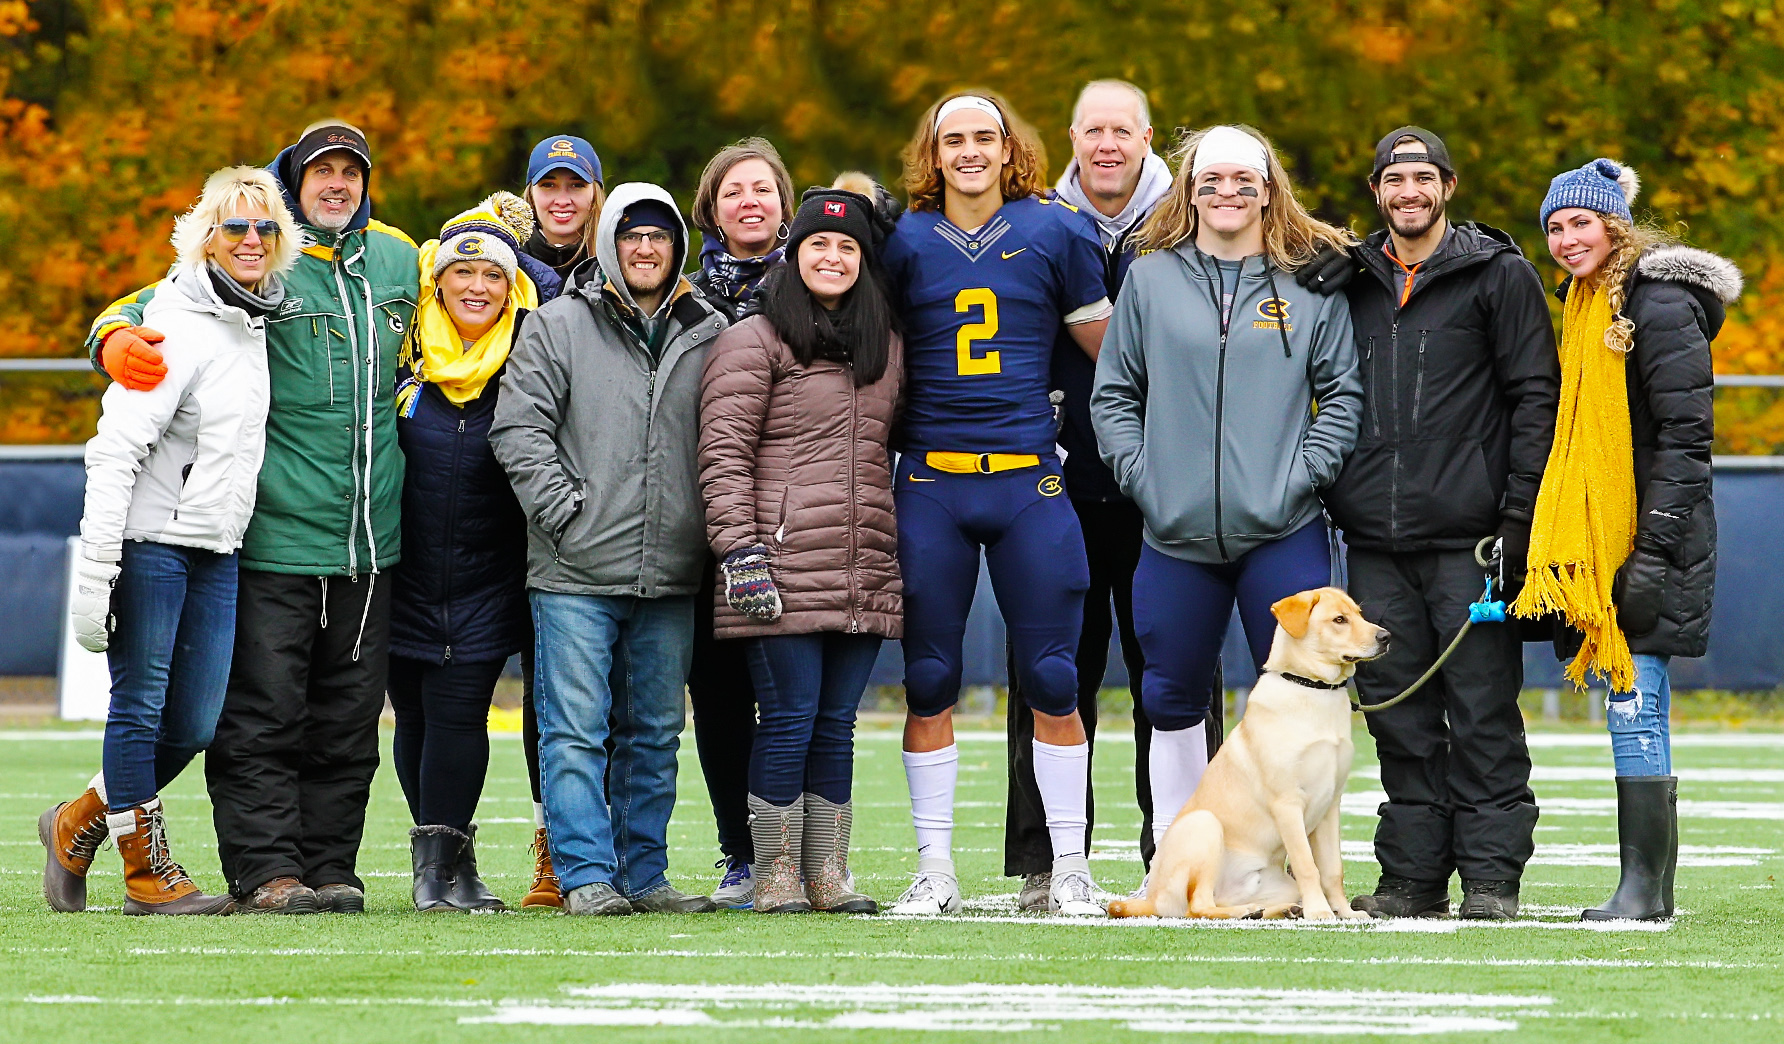 Blugold Game Day - A Family Affair for the Burzynski Family